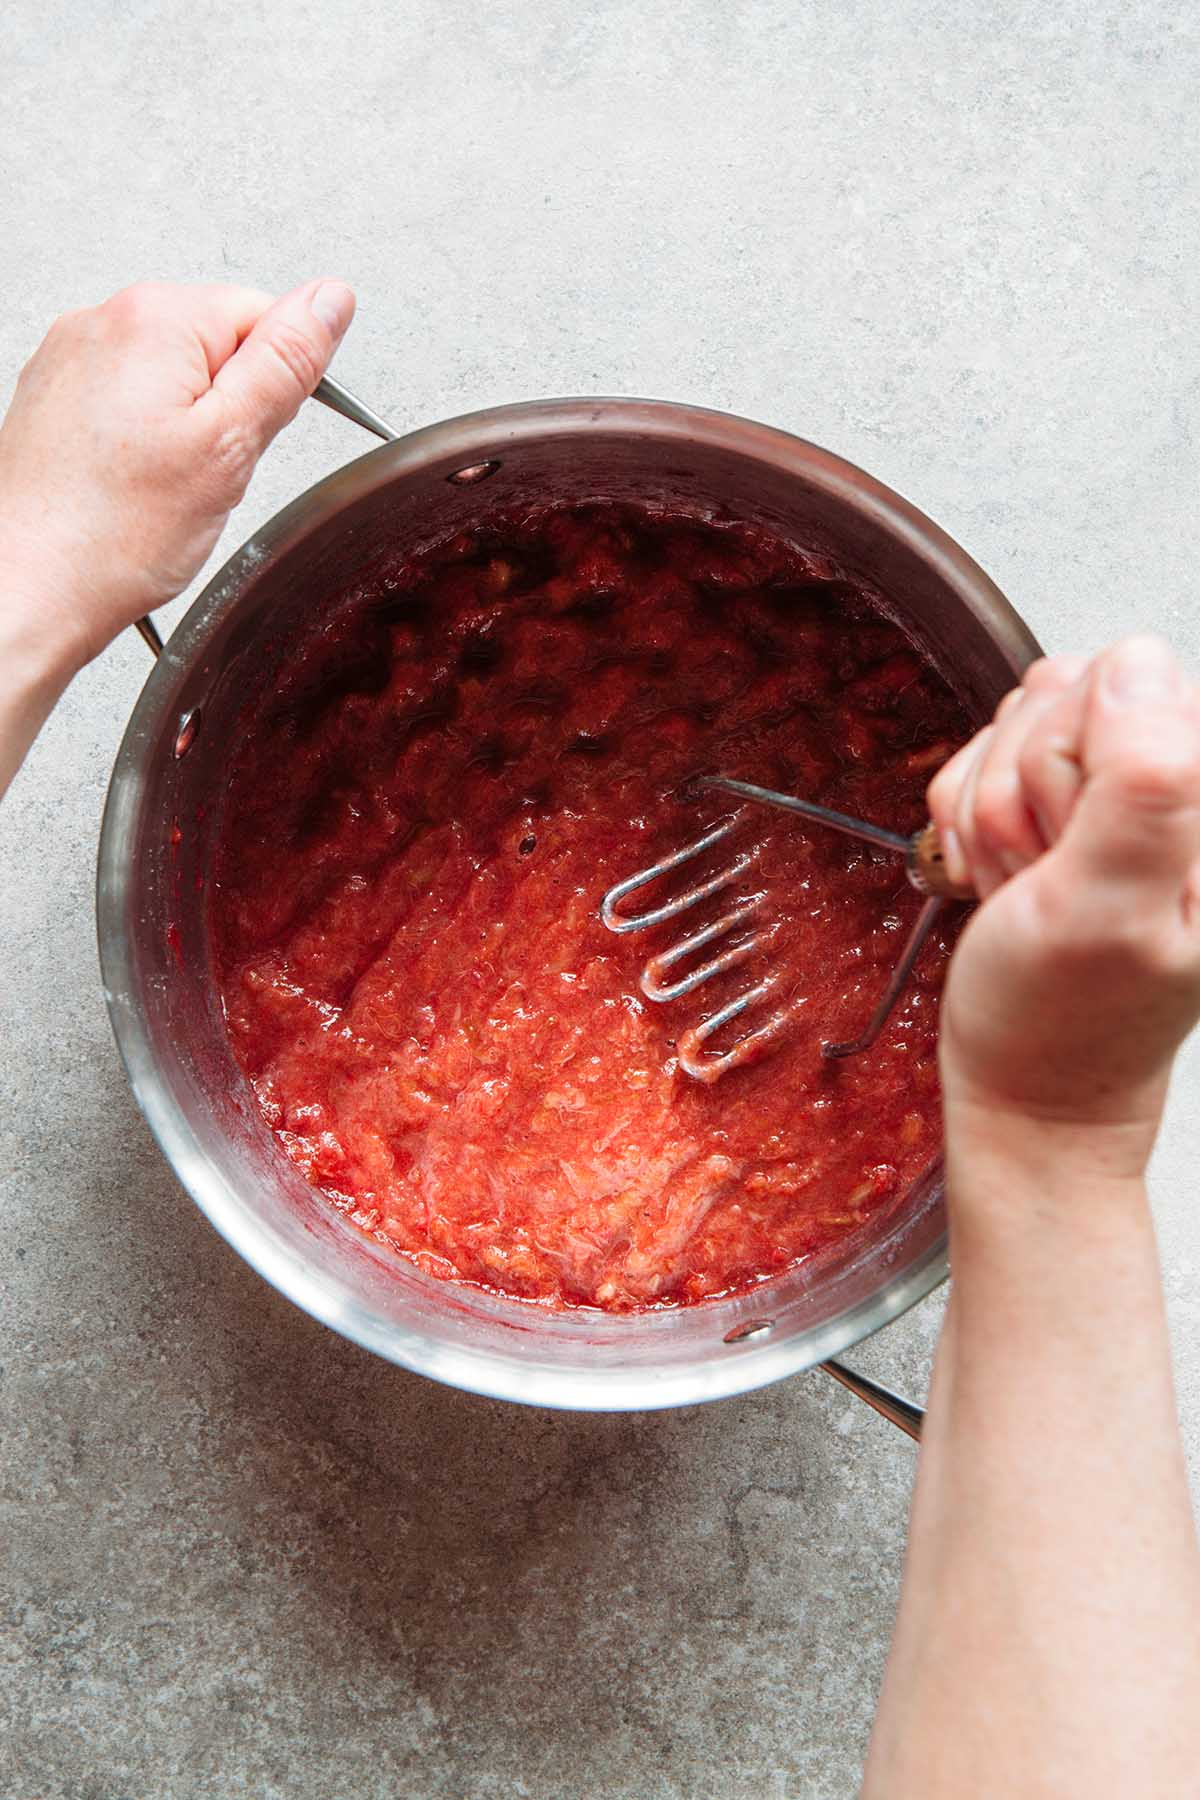 A hand crushing cooked rhubarb with a potato masher.